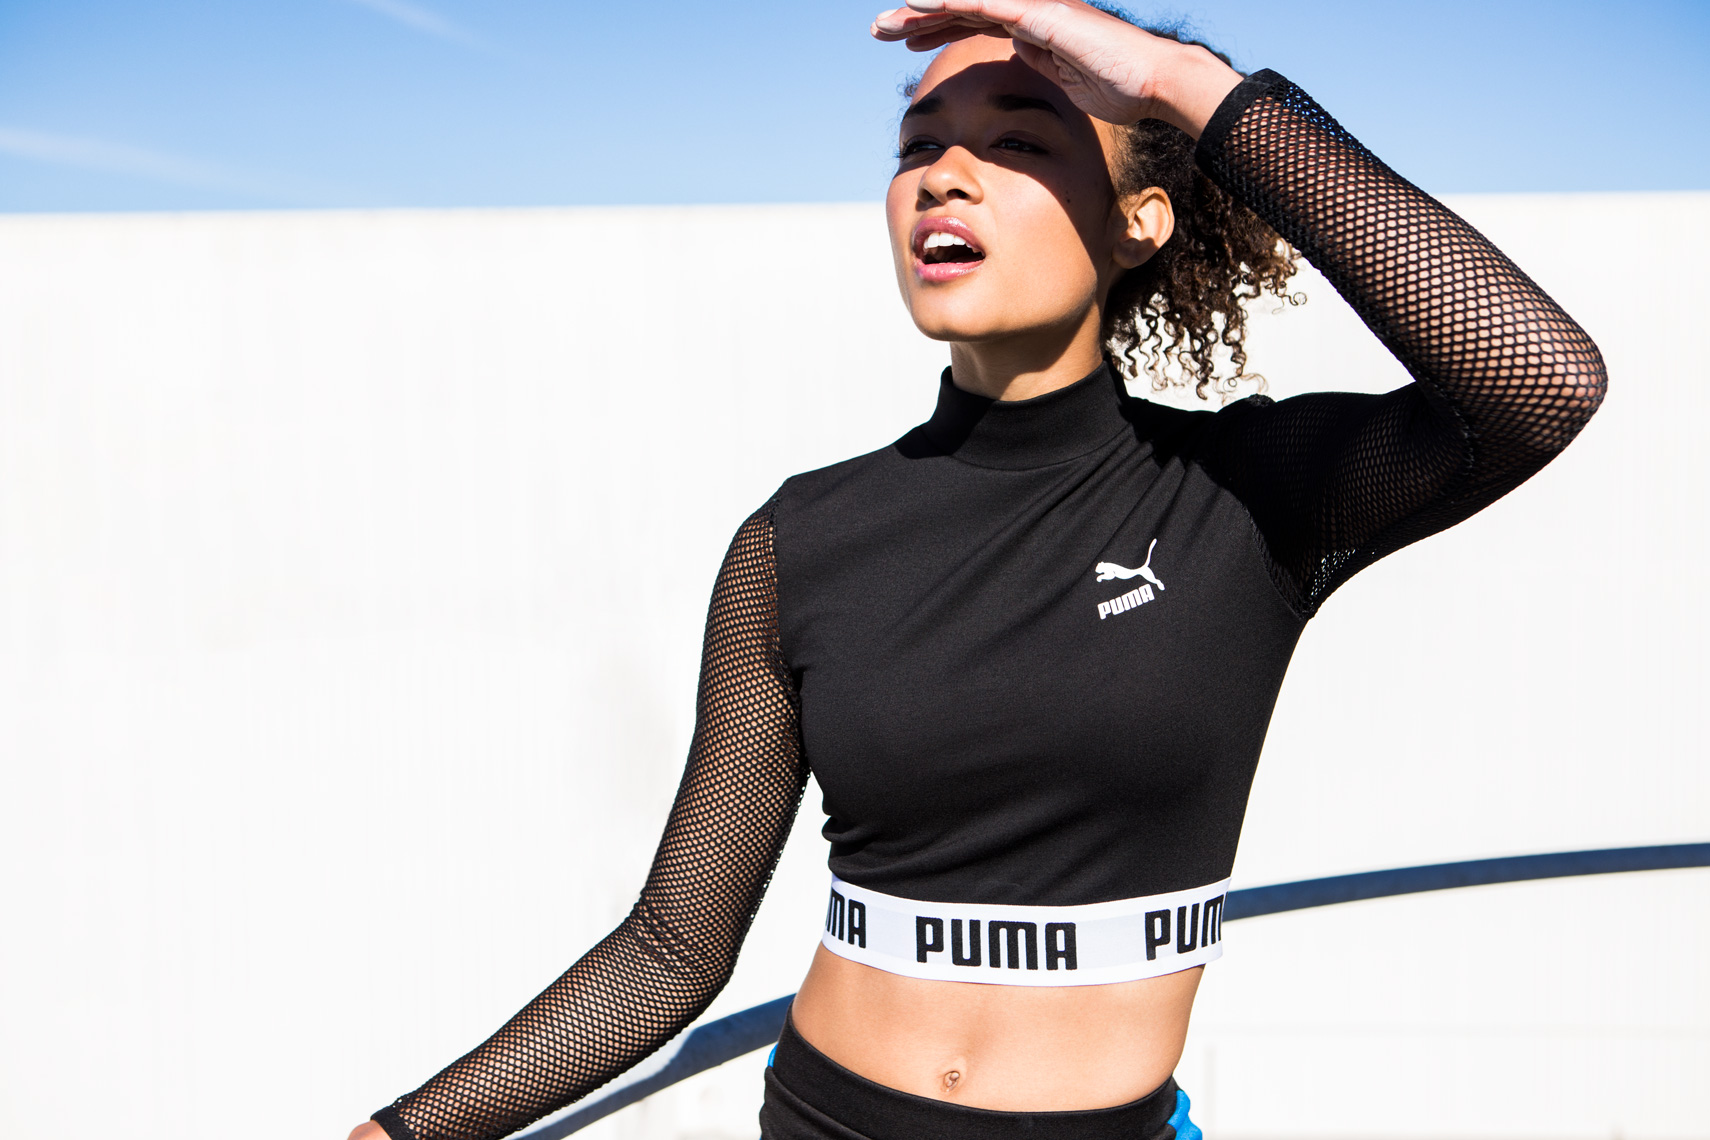 Athletic girl in Puma crop top